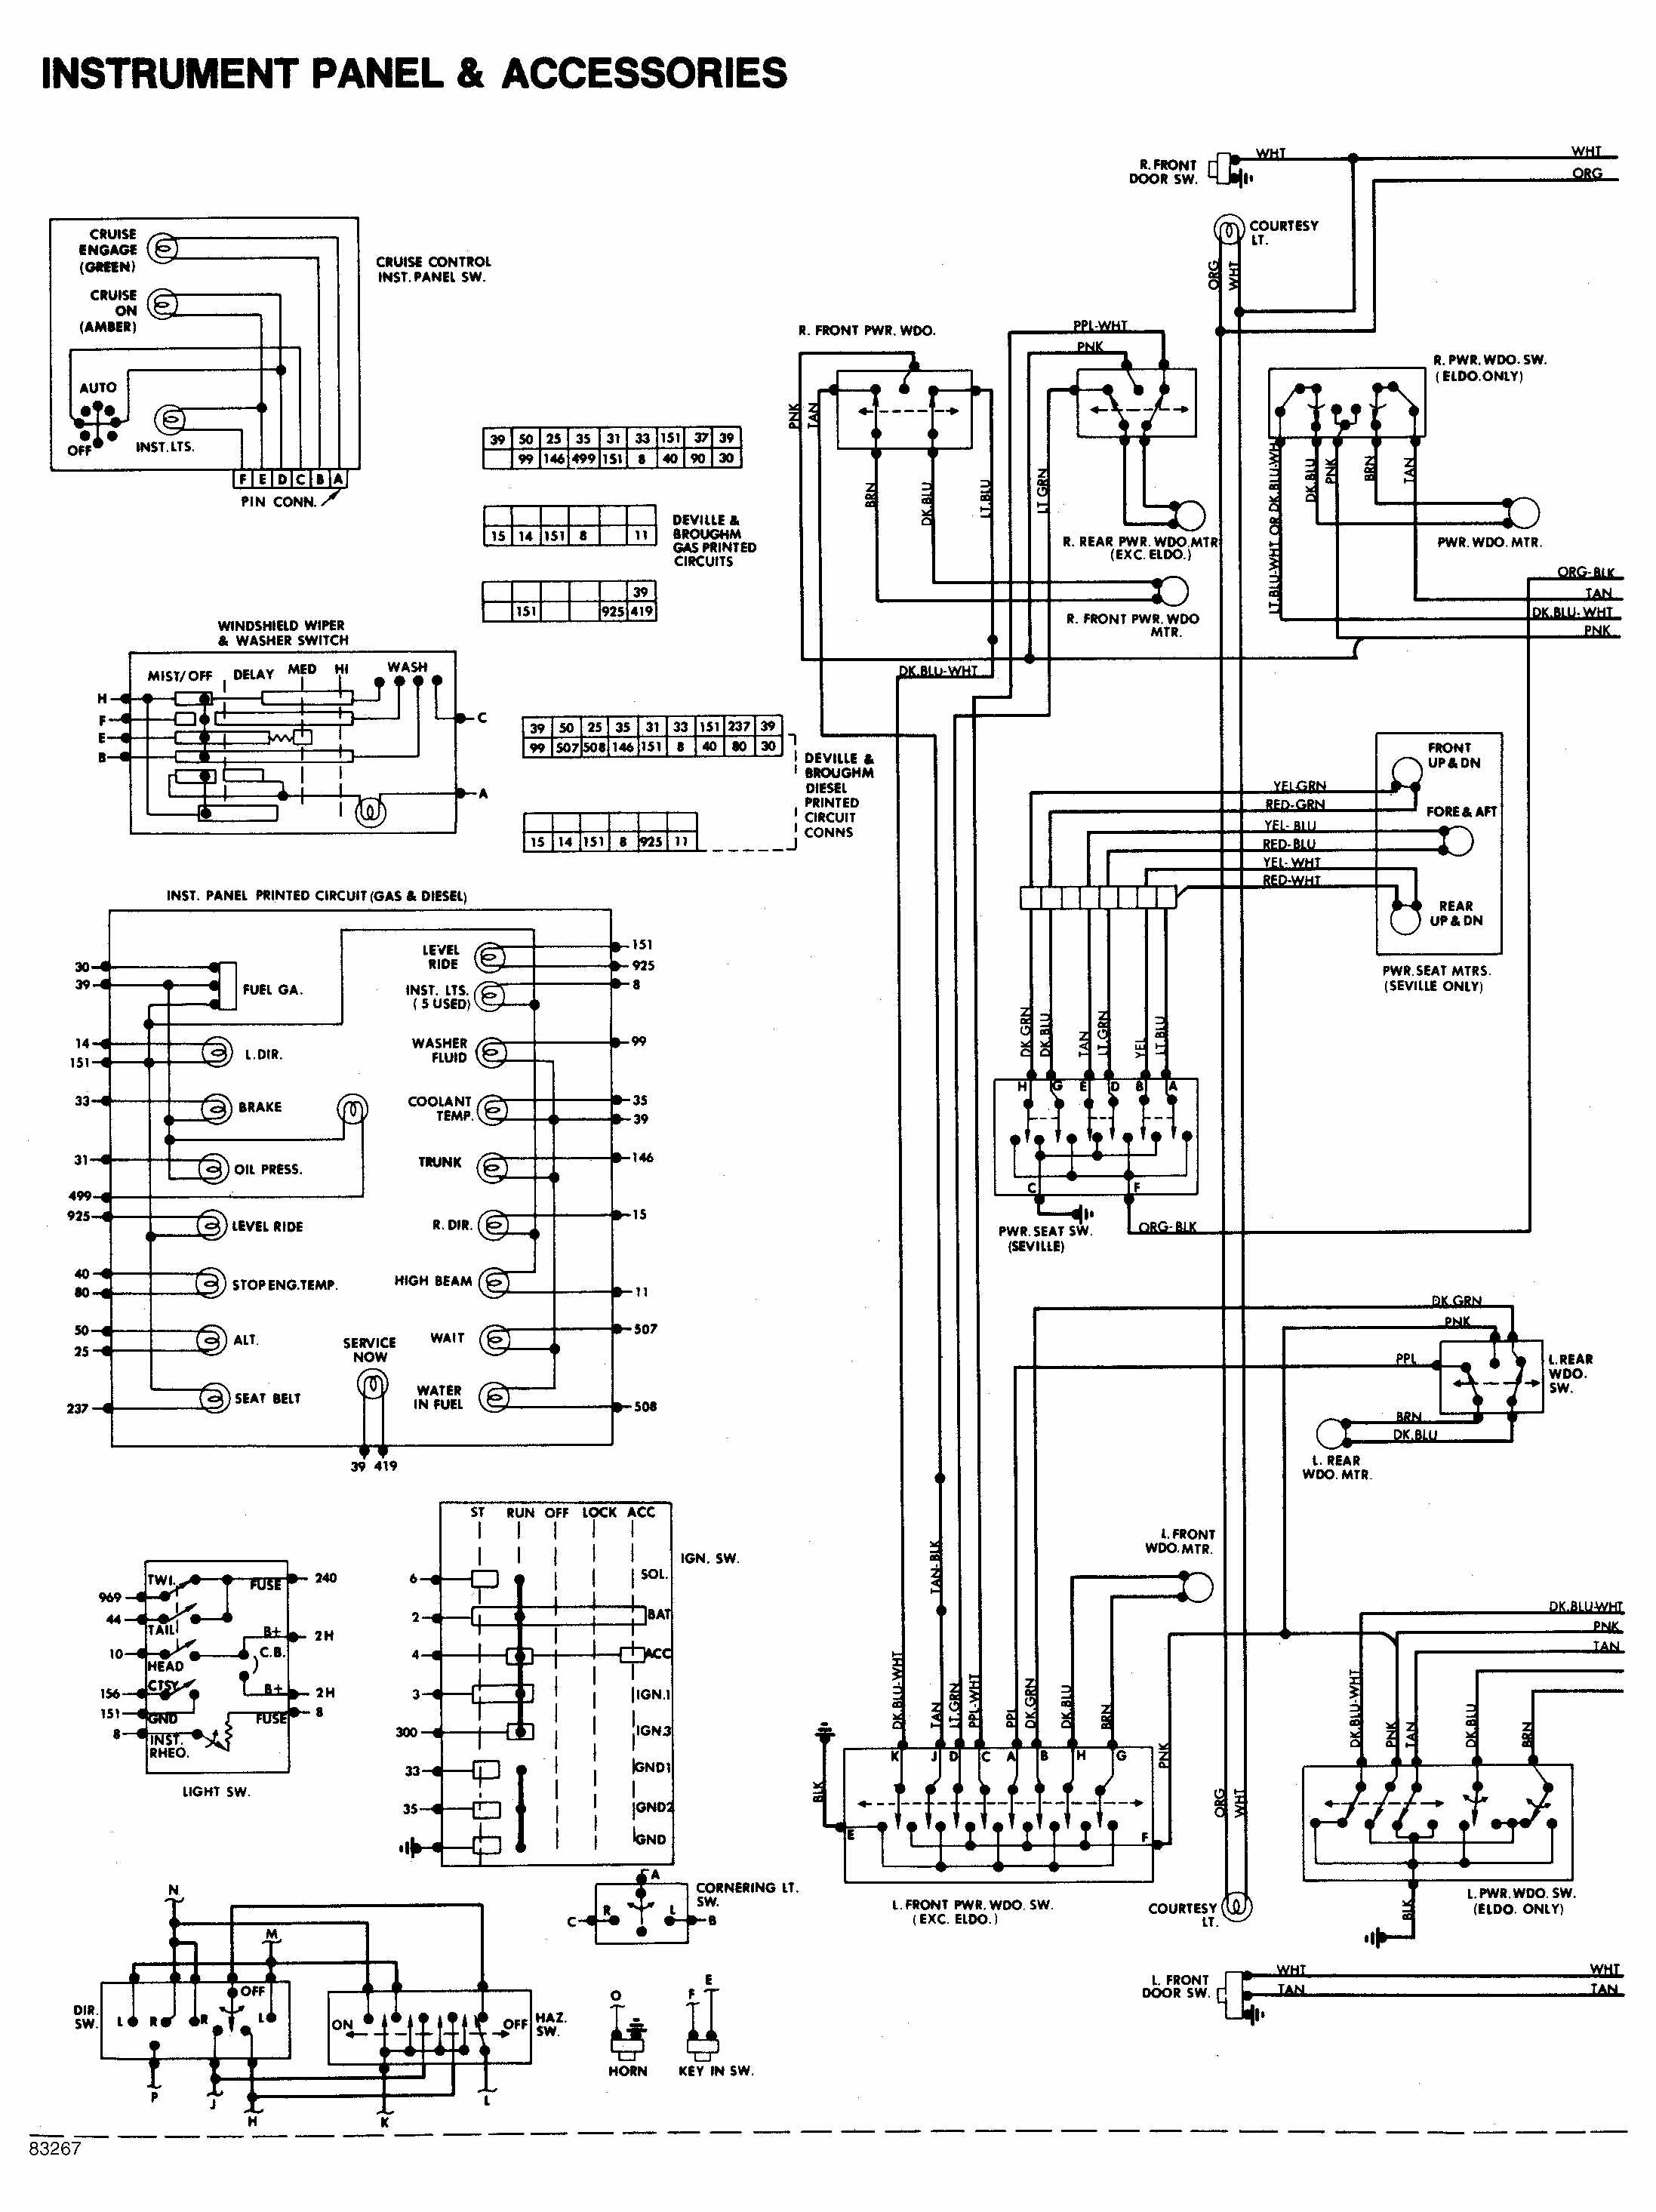 instrument panel and accessories wiring diagram of 1984 cadillac deville gm wiring diagrams gm wiring diagrams online \u2022 wiring diagrams j Ford 4600 Wiring Schematic at fashall.co